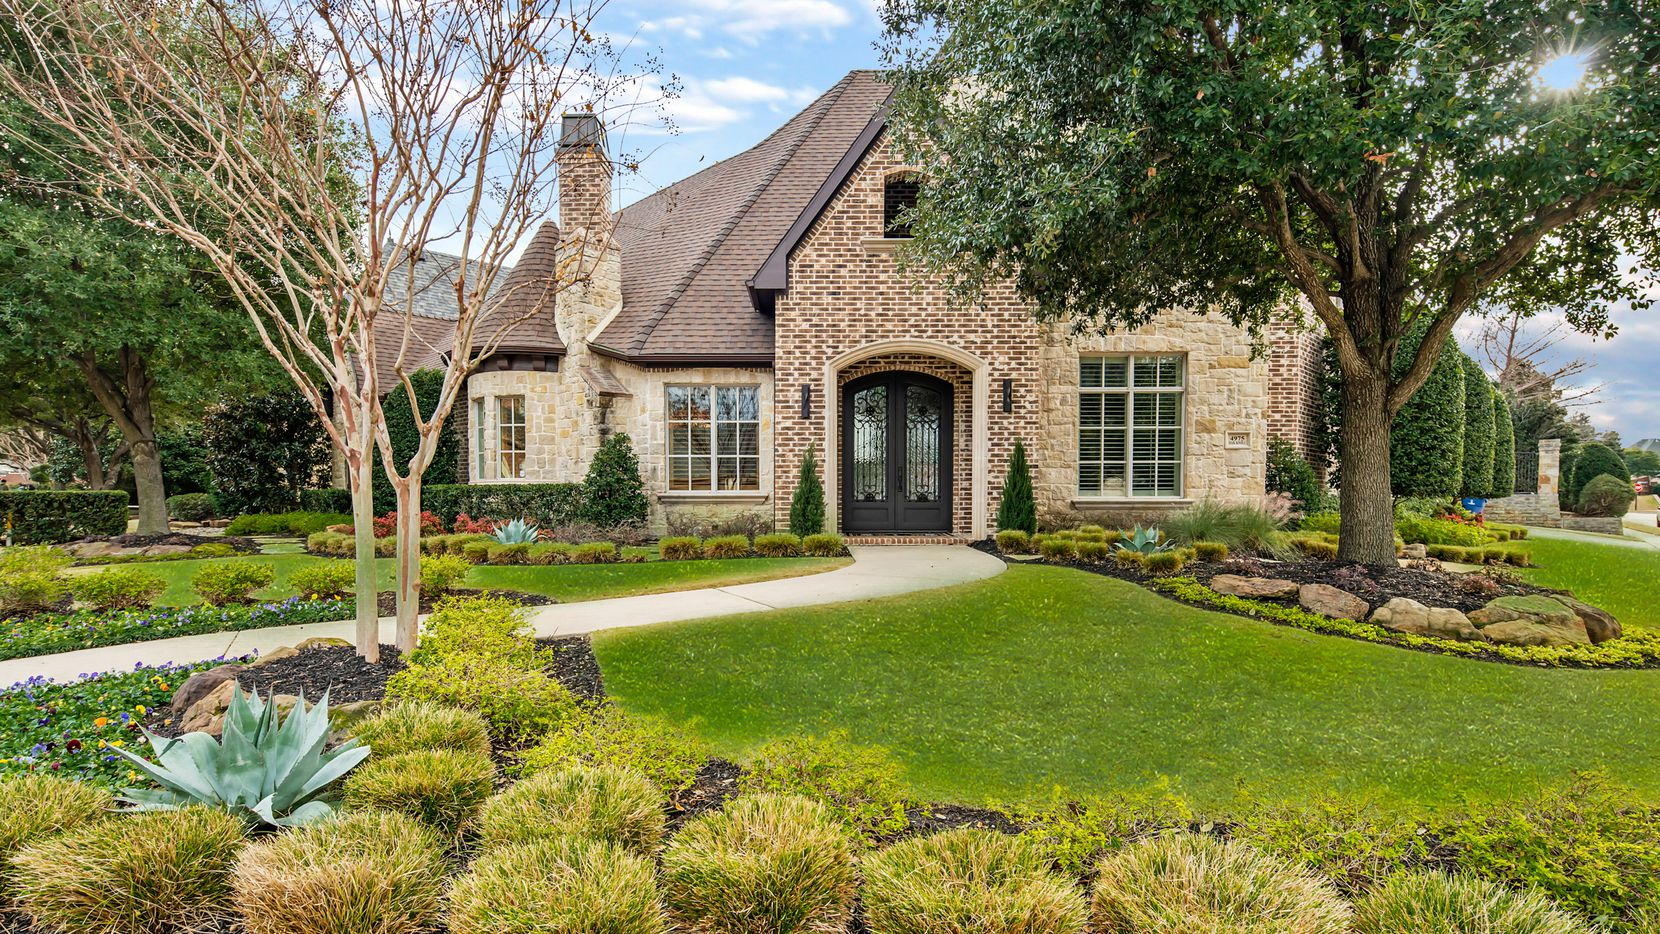 The updated Shelley Reynolds custom estate at 4975 Oak Knoll Lane is offered at $1,399,900.